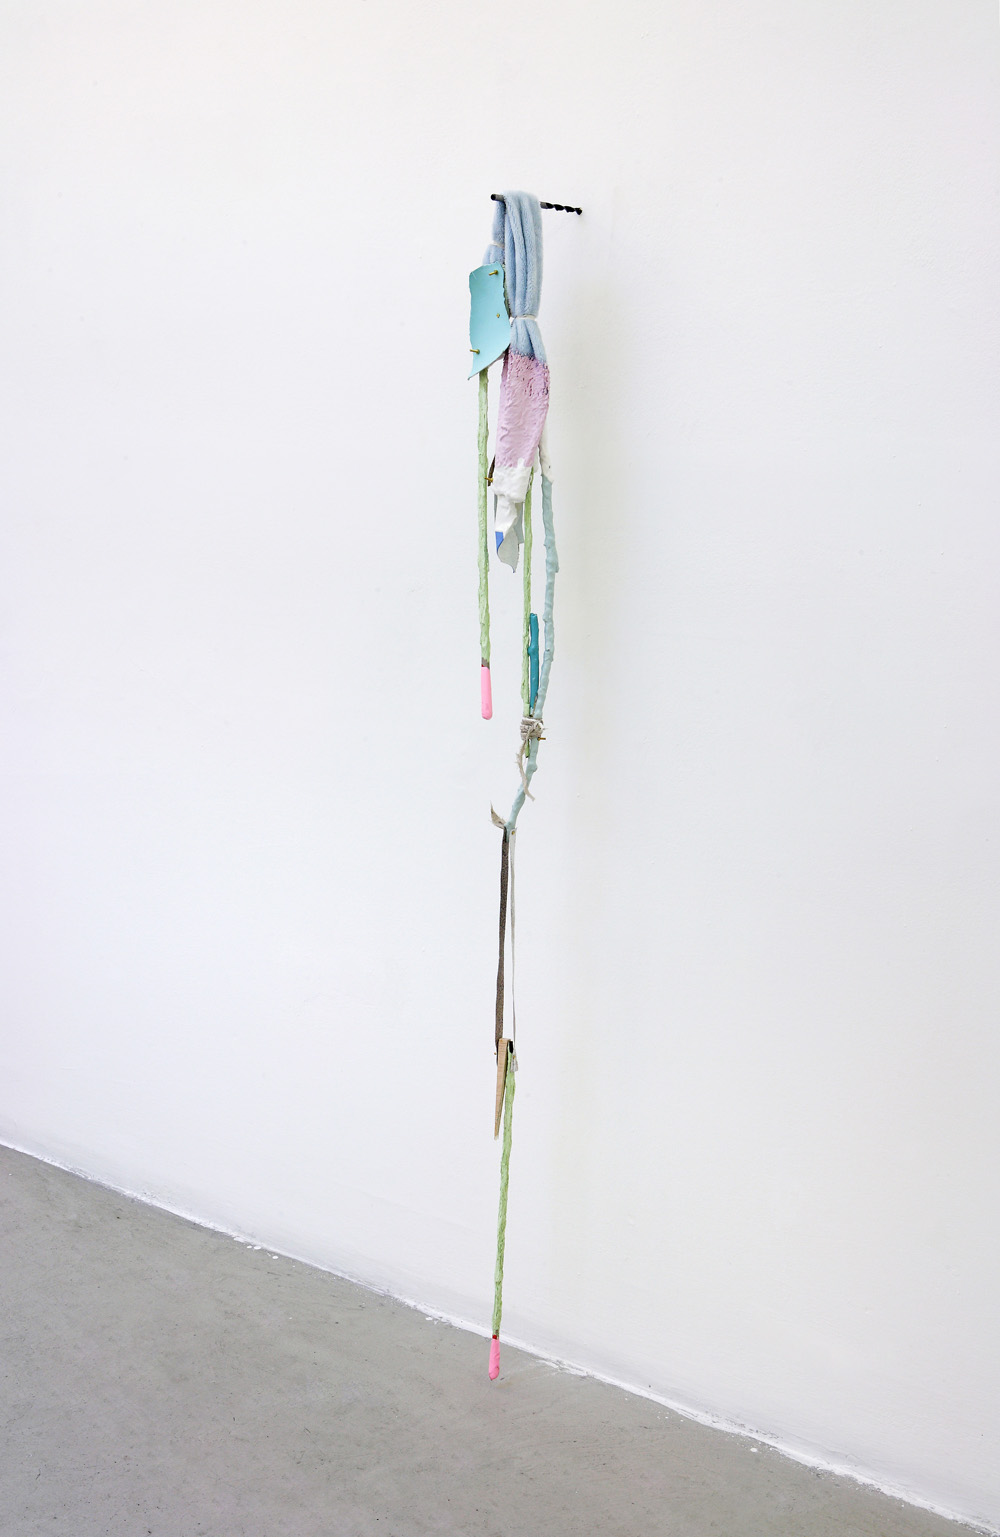 Suspenso, 2011, mixed media, 158 x 12 x 17 cm